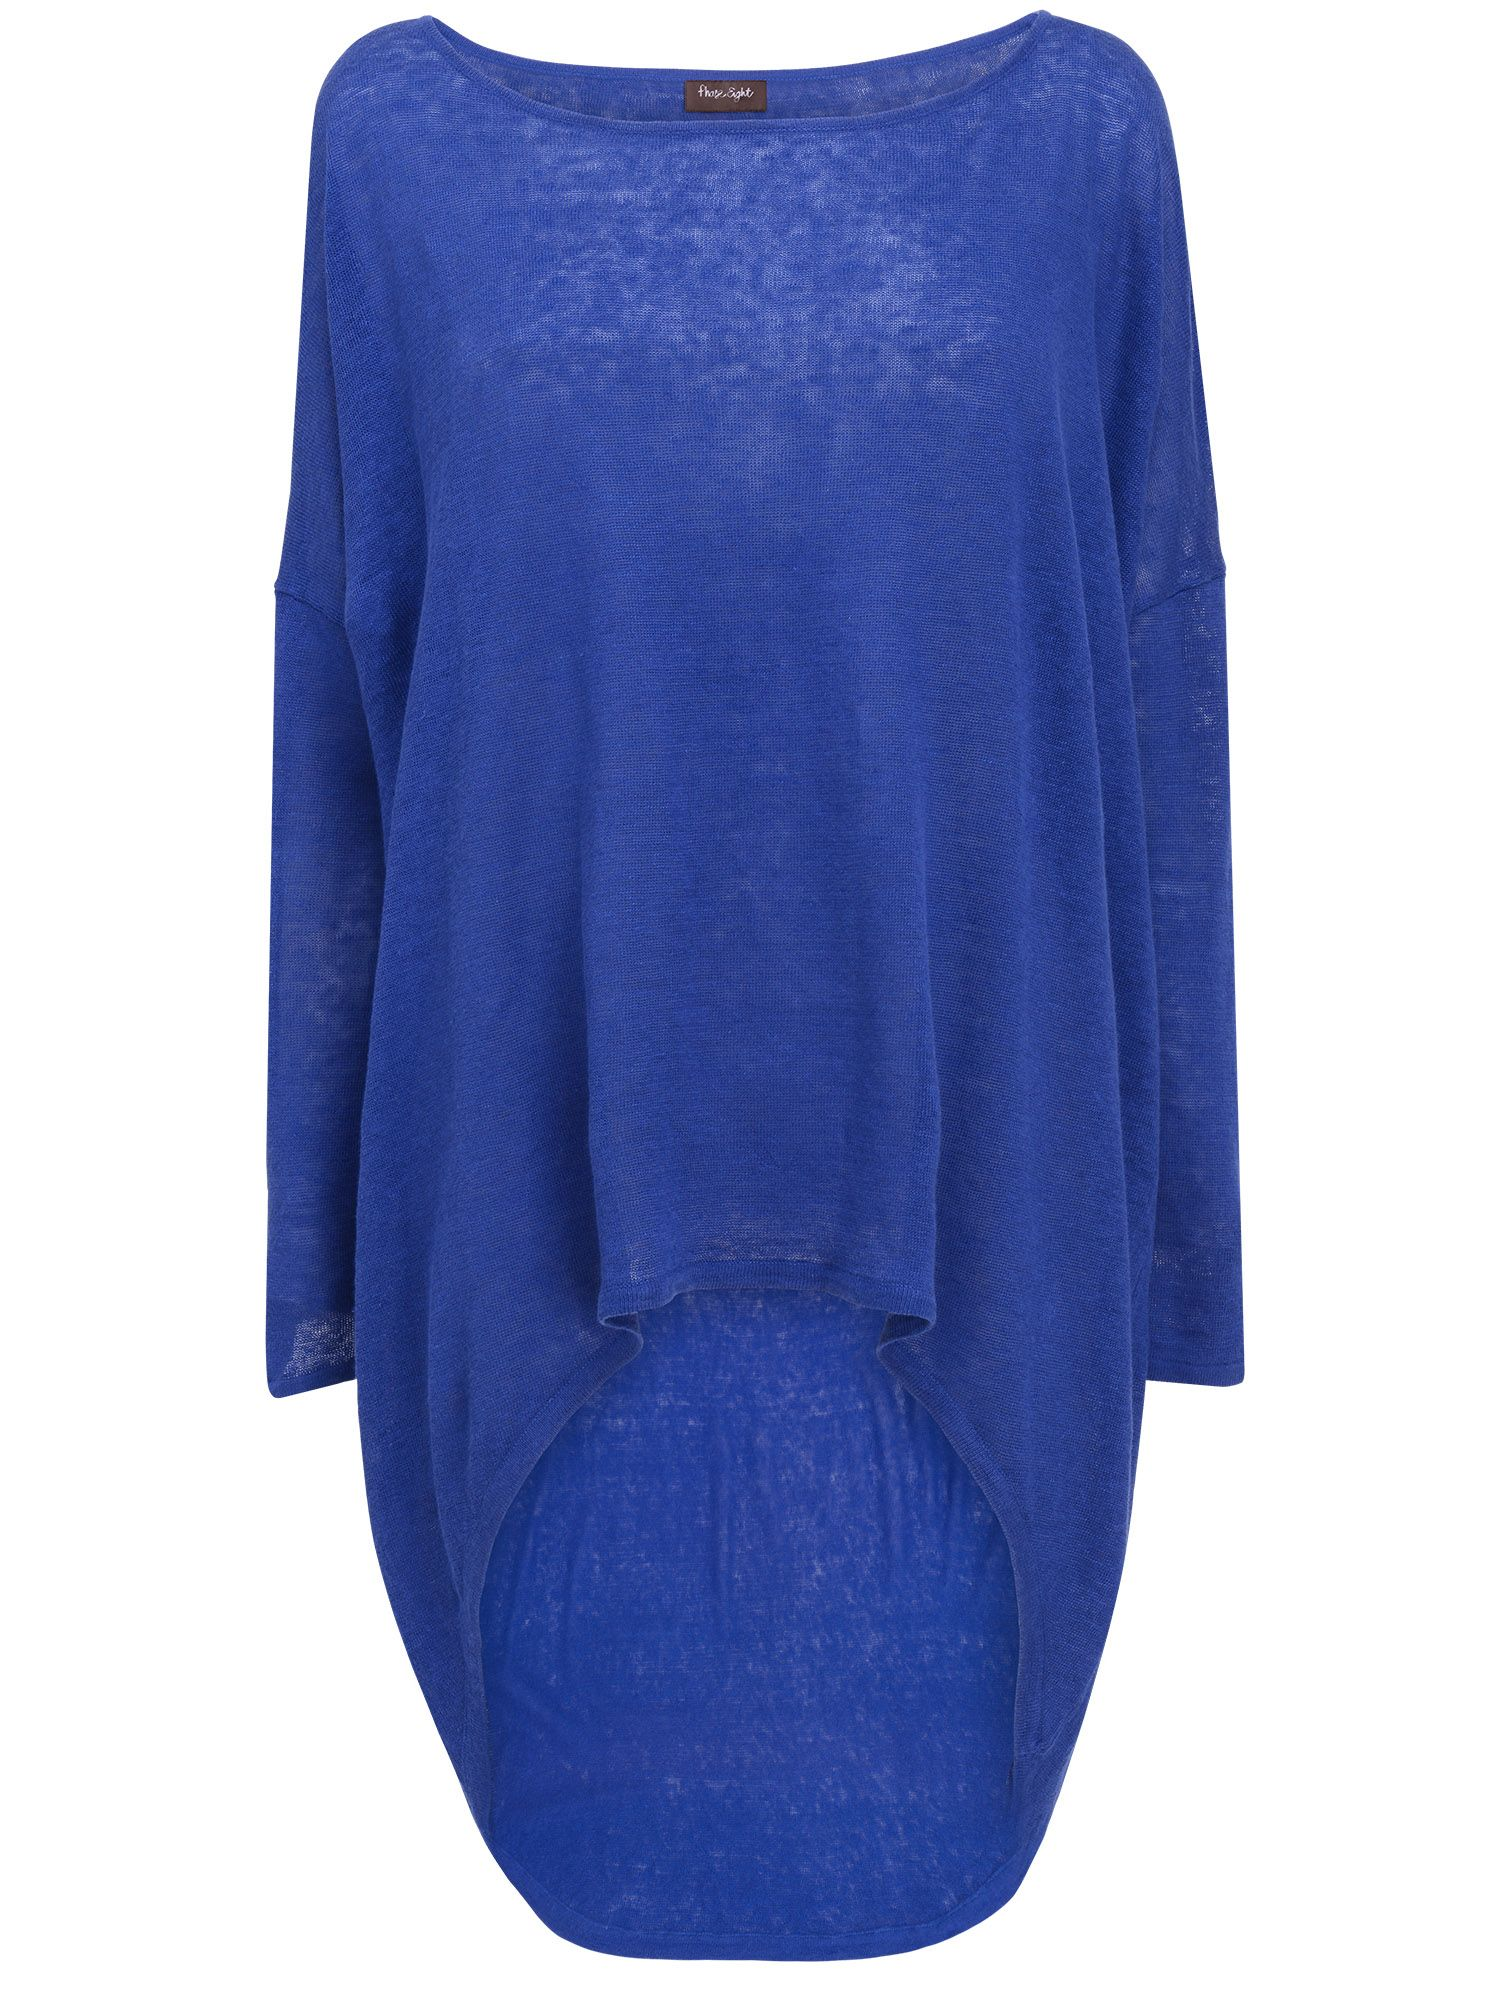 Elen ellipse hem linen knit jumper